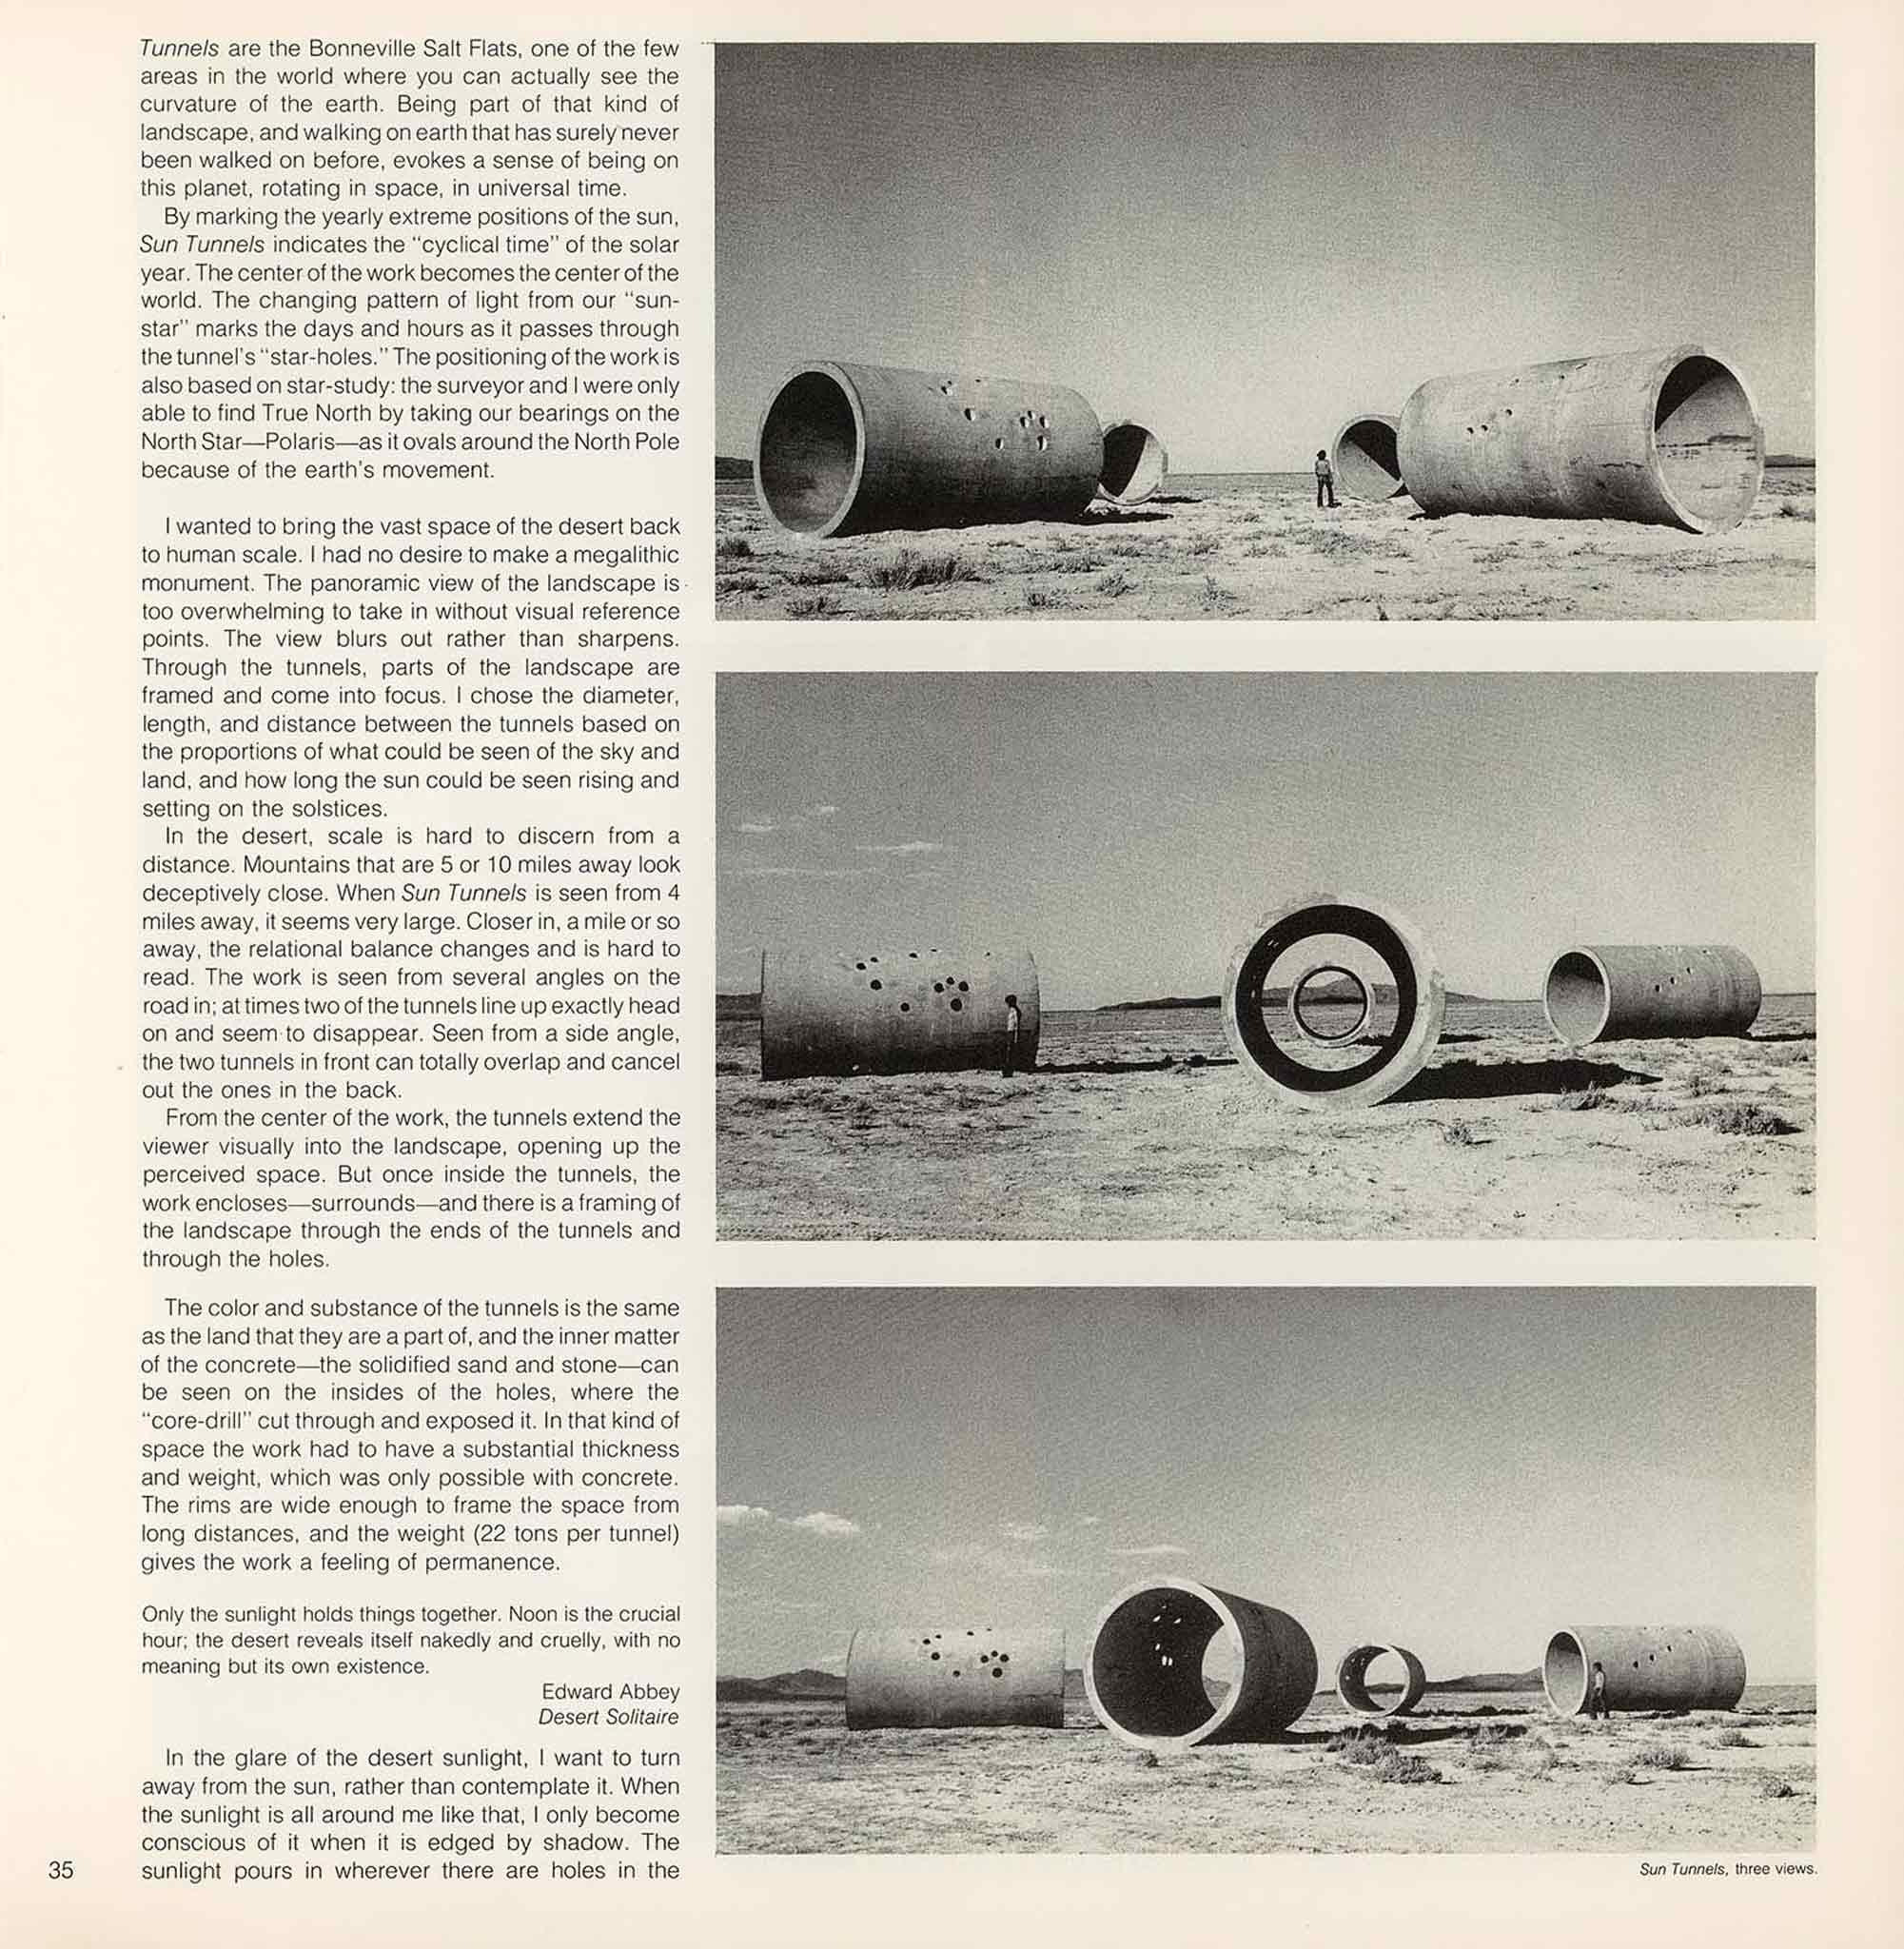 magazine layout with text on left and three images stacked vertically on the right.  Images are of a circular concrete tunnels in the distance with a figure to show their large scale of 9ft in height.